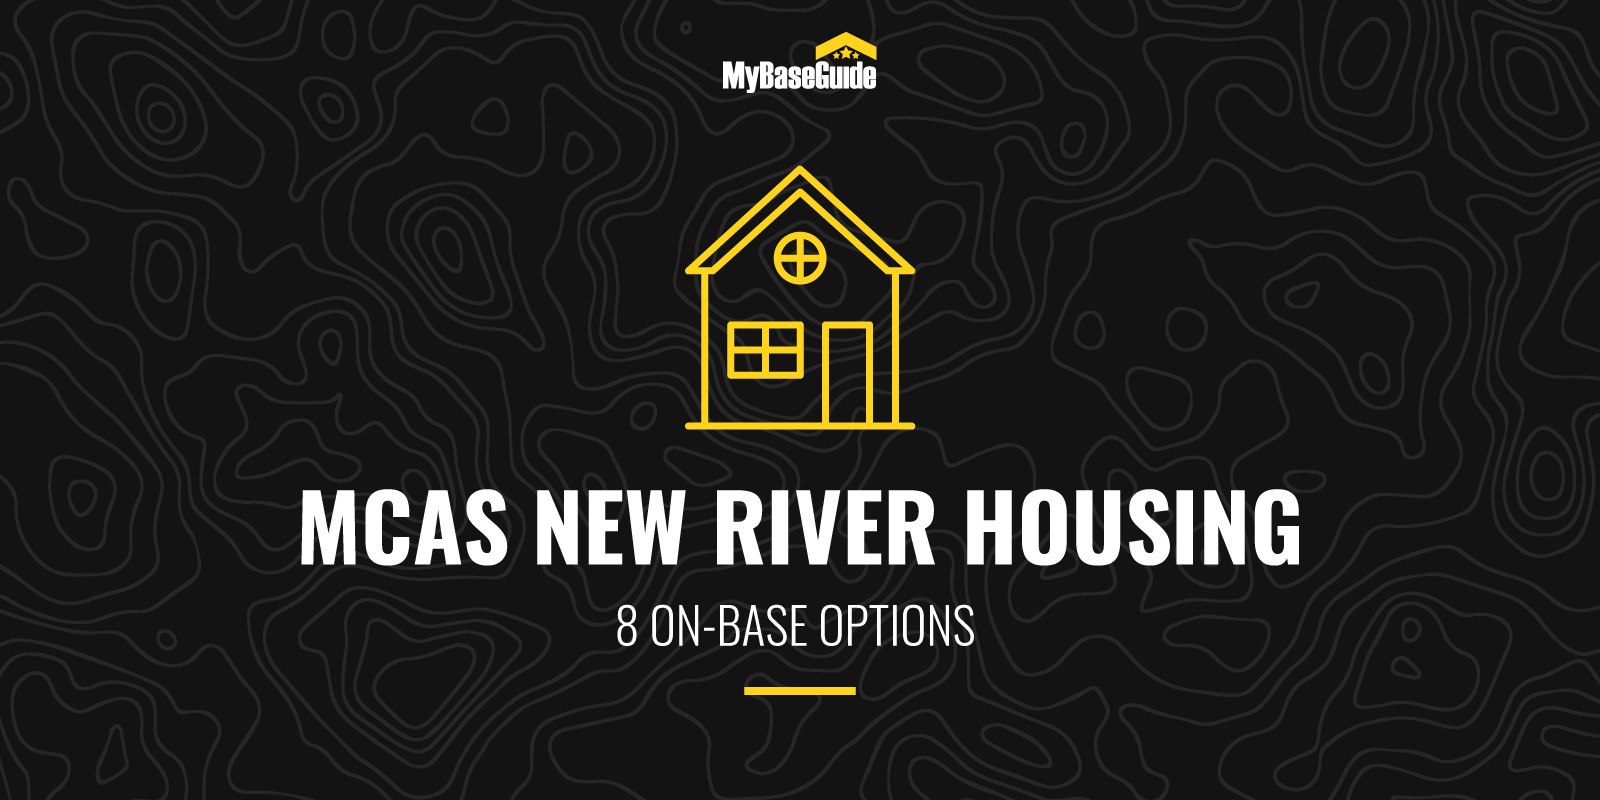 MCAS New River Housing: 8 On-Base Options